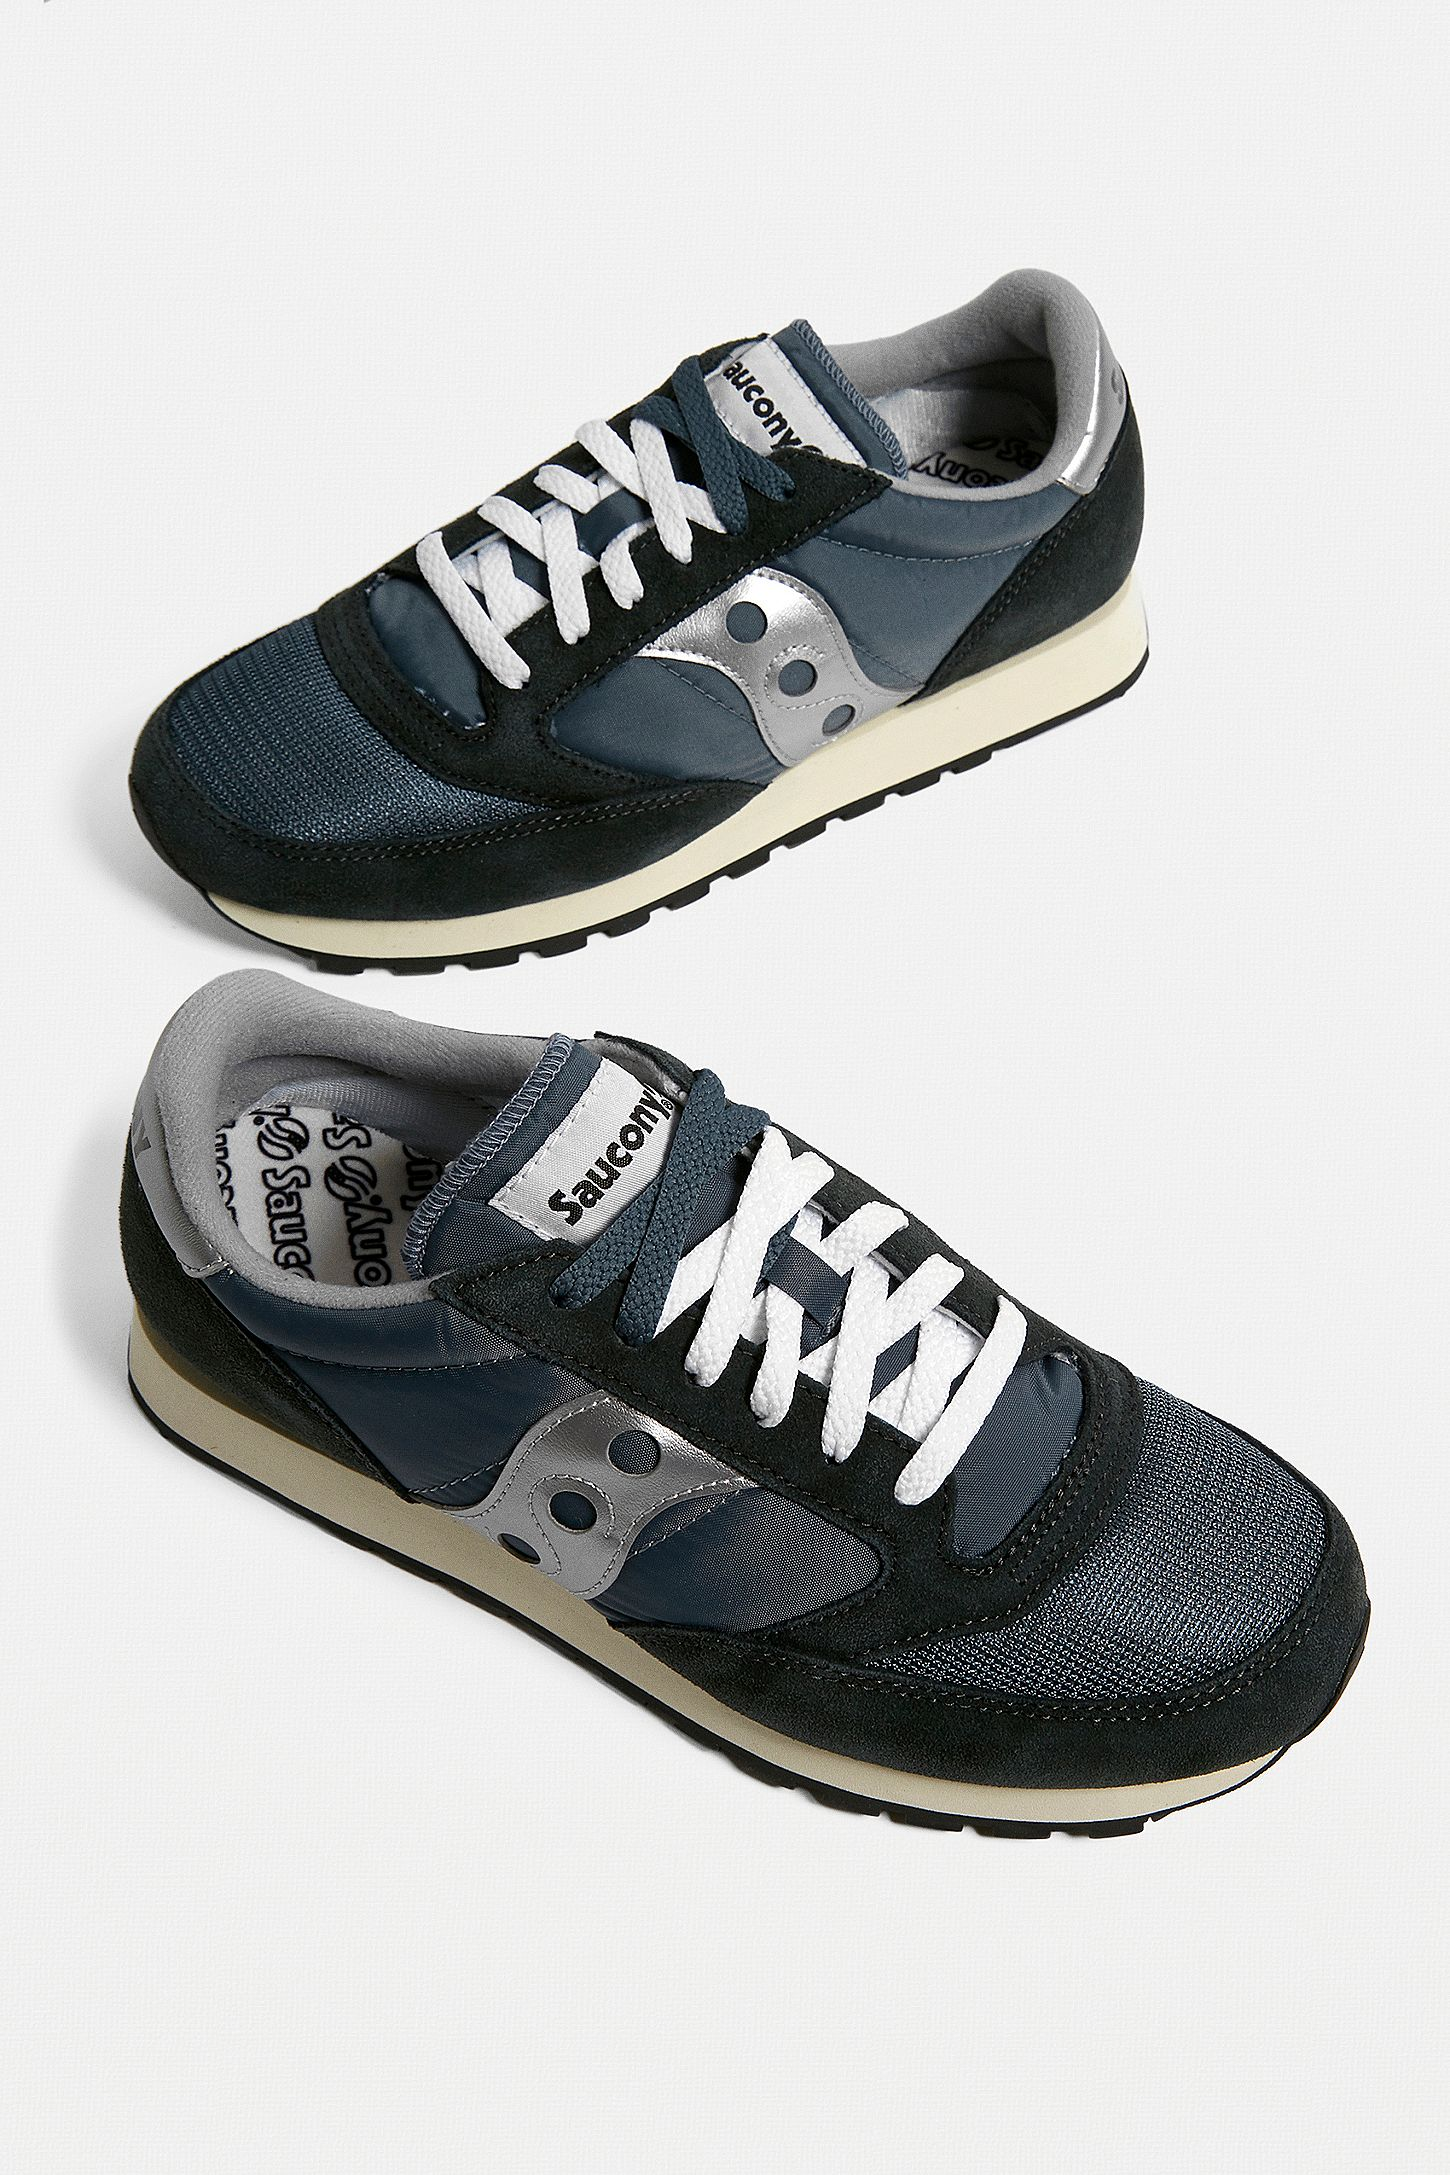 finest selection 4cc6b 889a1 Saucony Jazz Original Blue, Navy and Silver Trainers